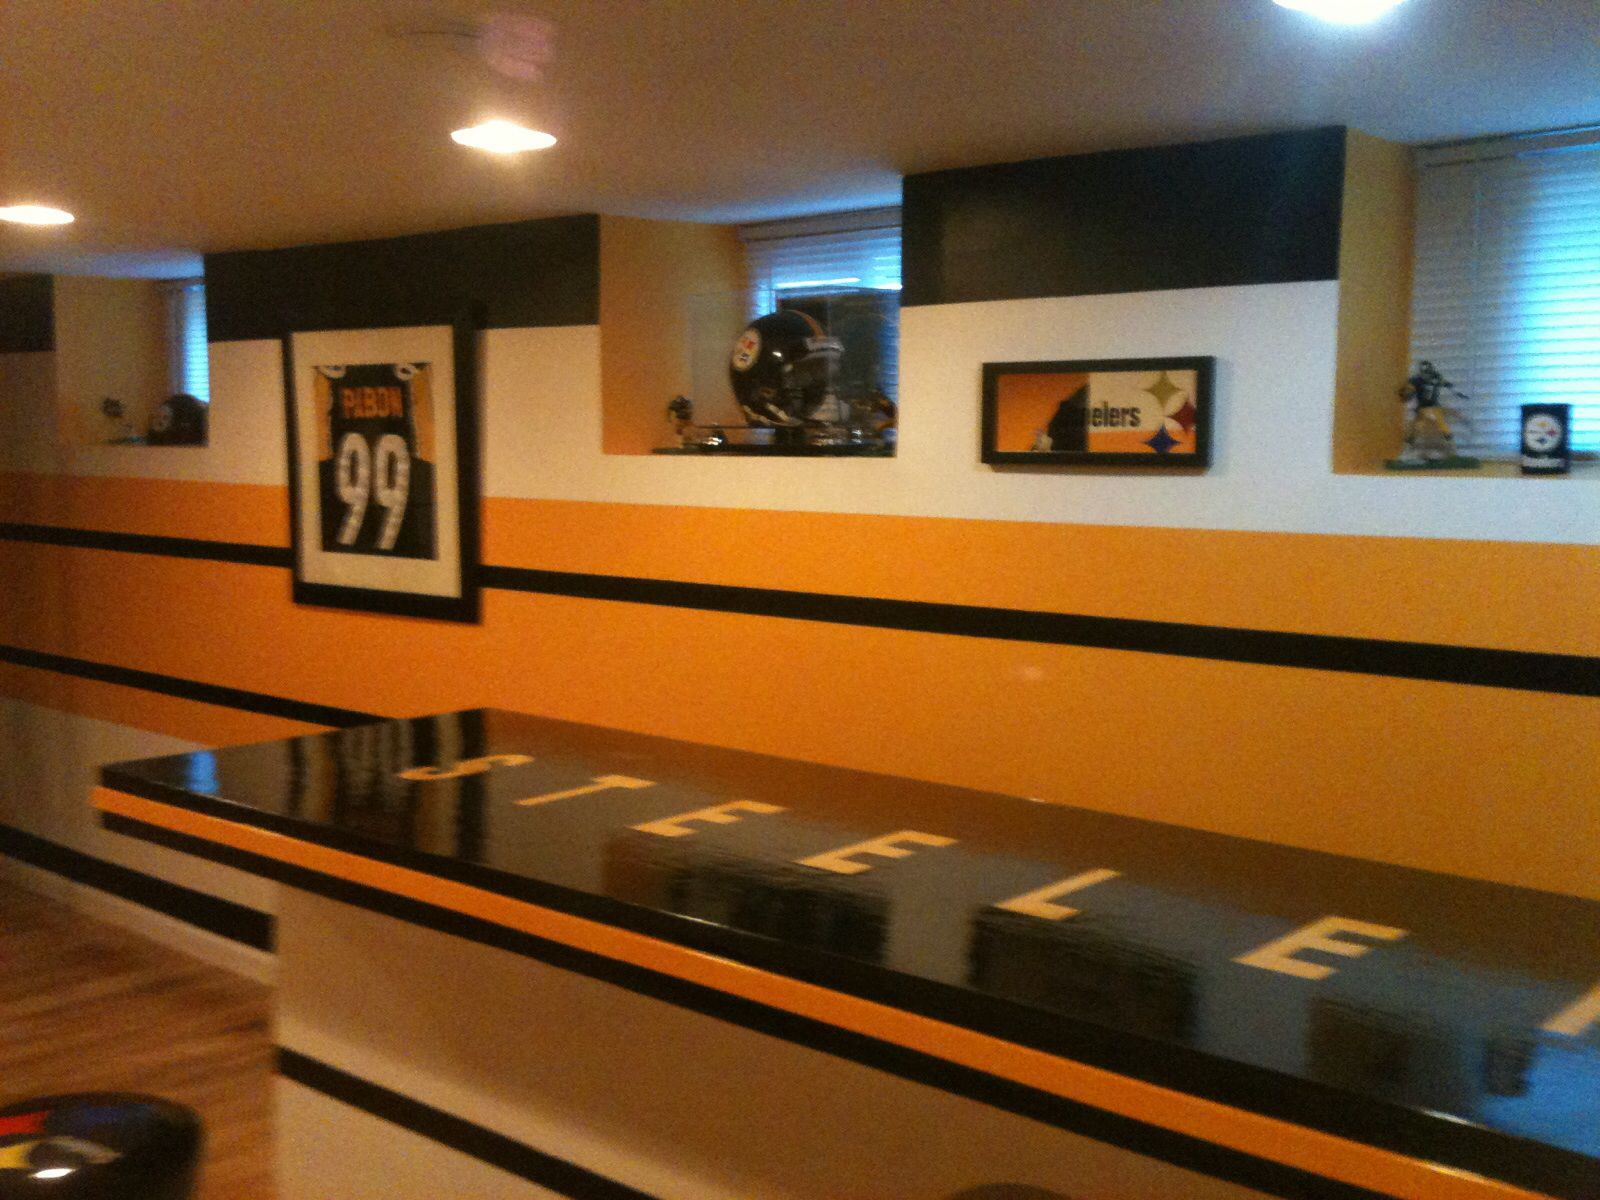 Steelers Bedroom Ideas Our Steelers Man Cave Our Steelers Man Cave. Pinterest